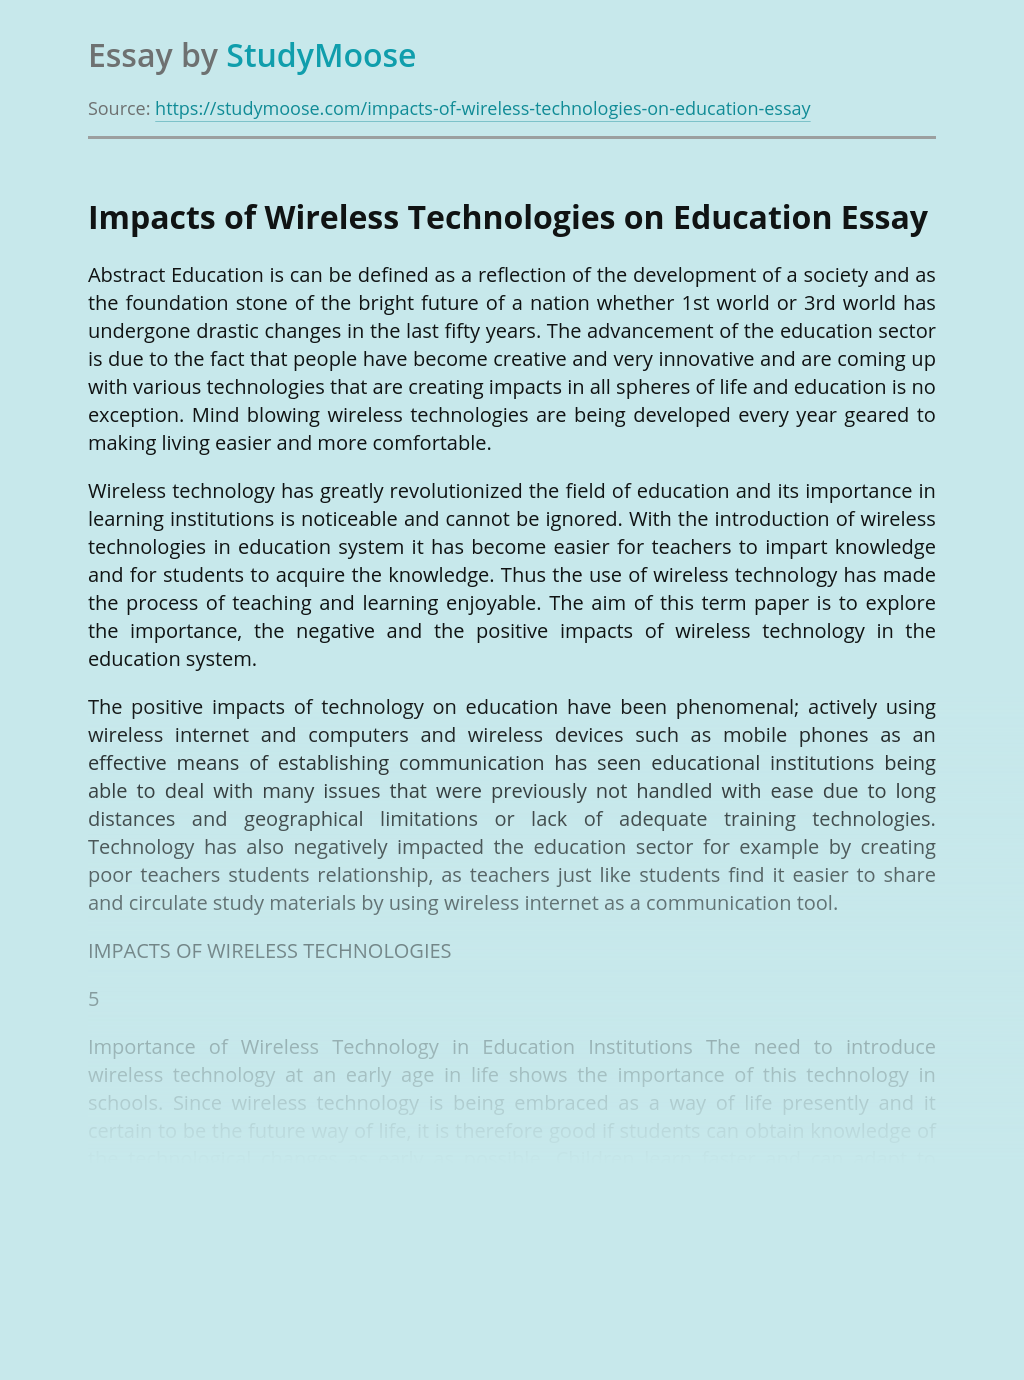 Impacts of Wireless Technologies on Education